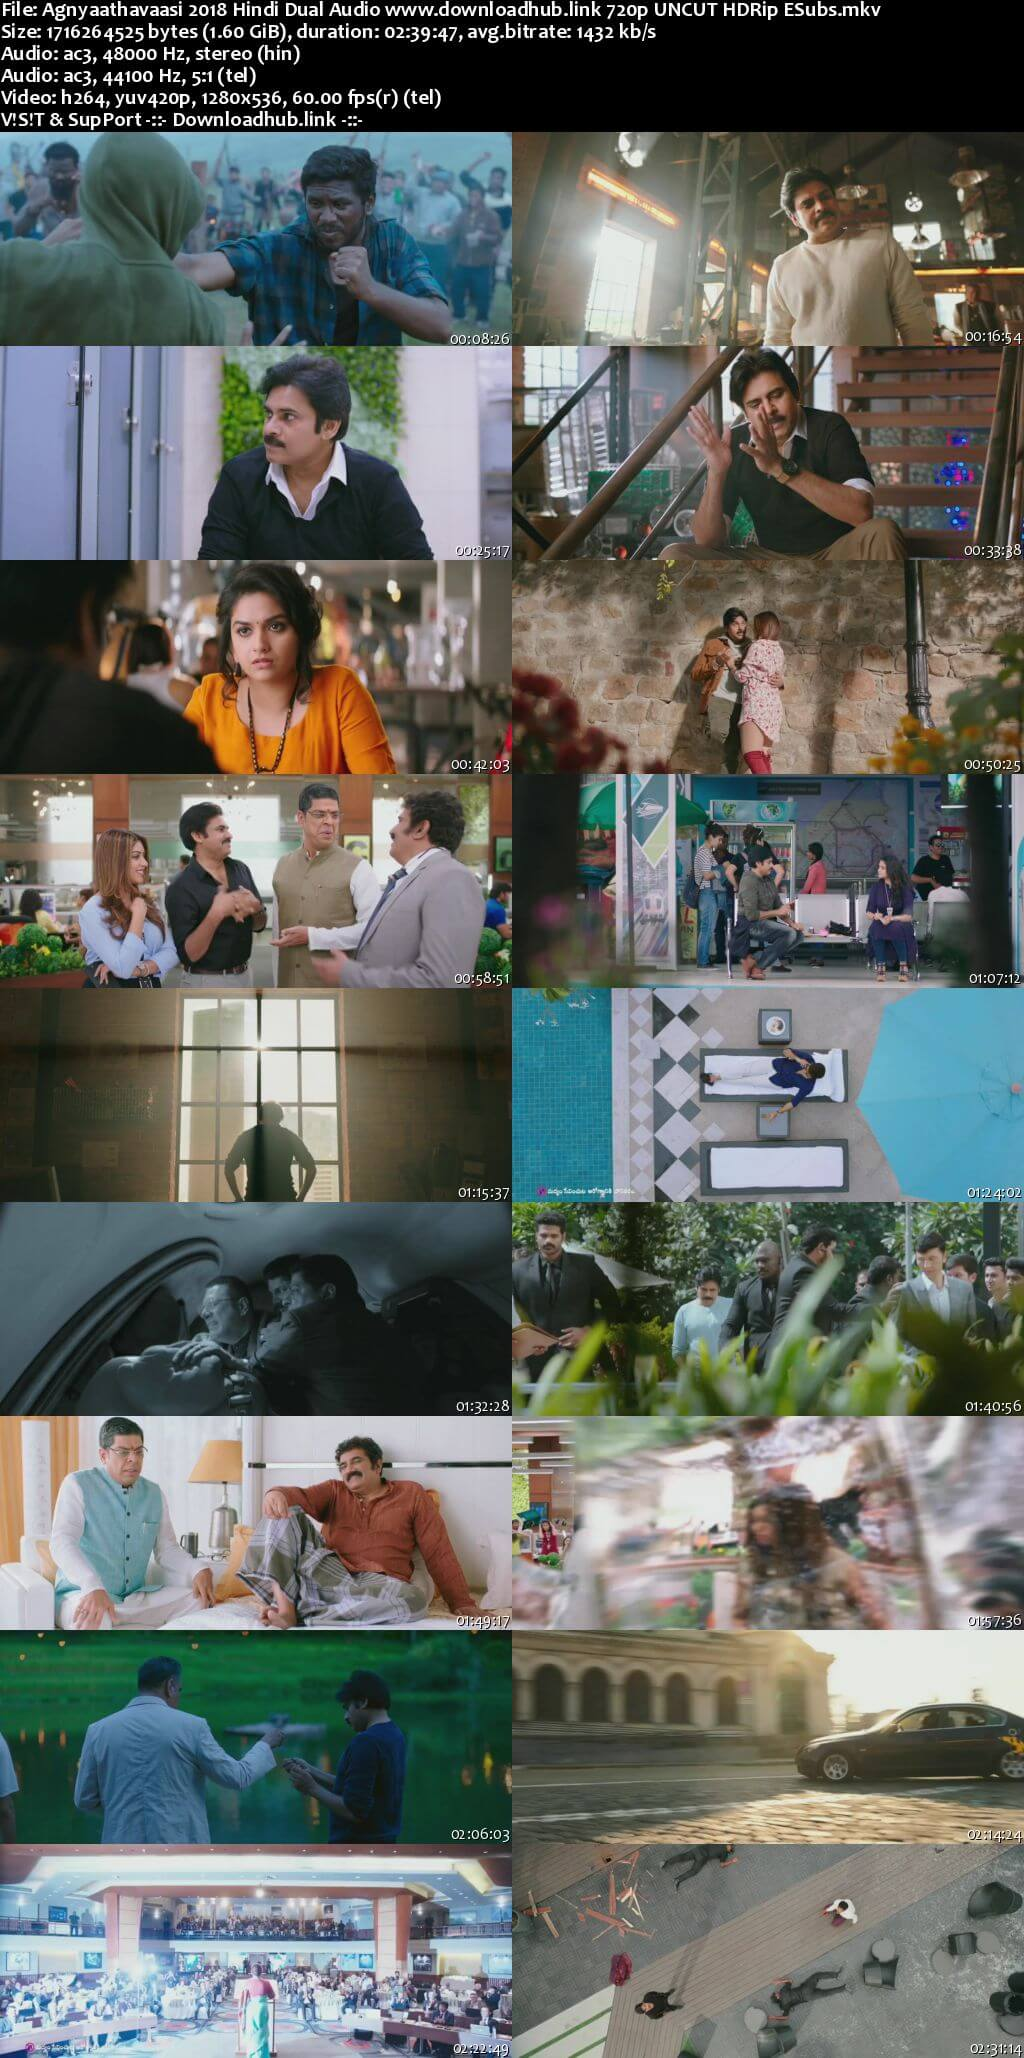 Agnyaathavaasi 2018 Hindi Dual Audio 720p UNCUT HDRip ESubs